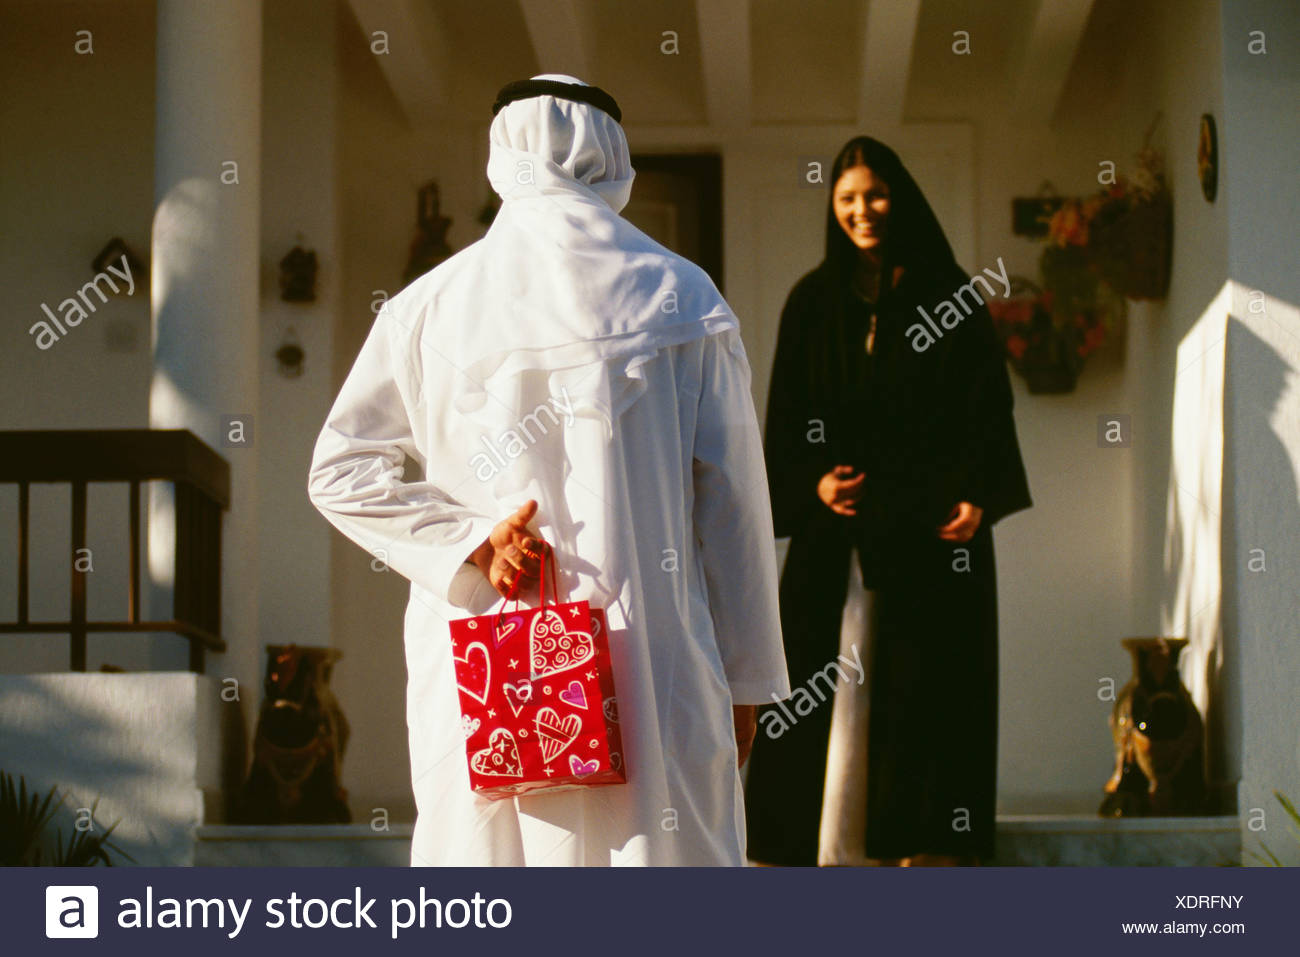 Rear view of a husband hiding a gift from his wife. - Stock Image